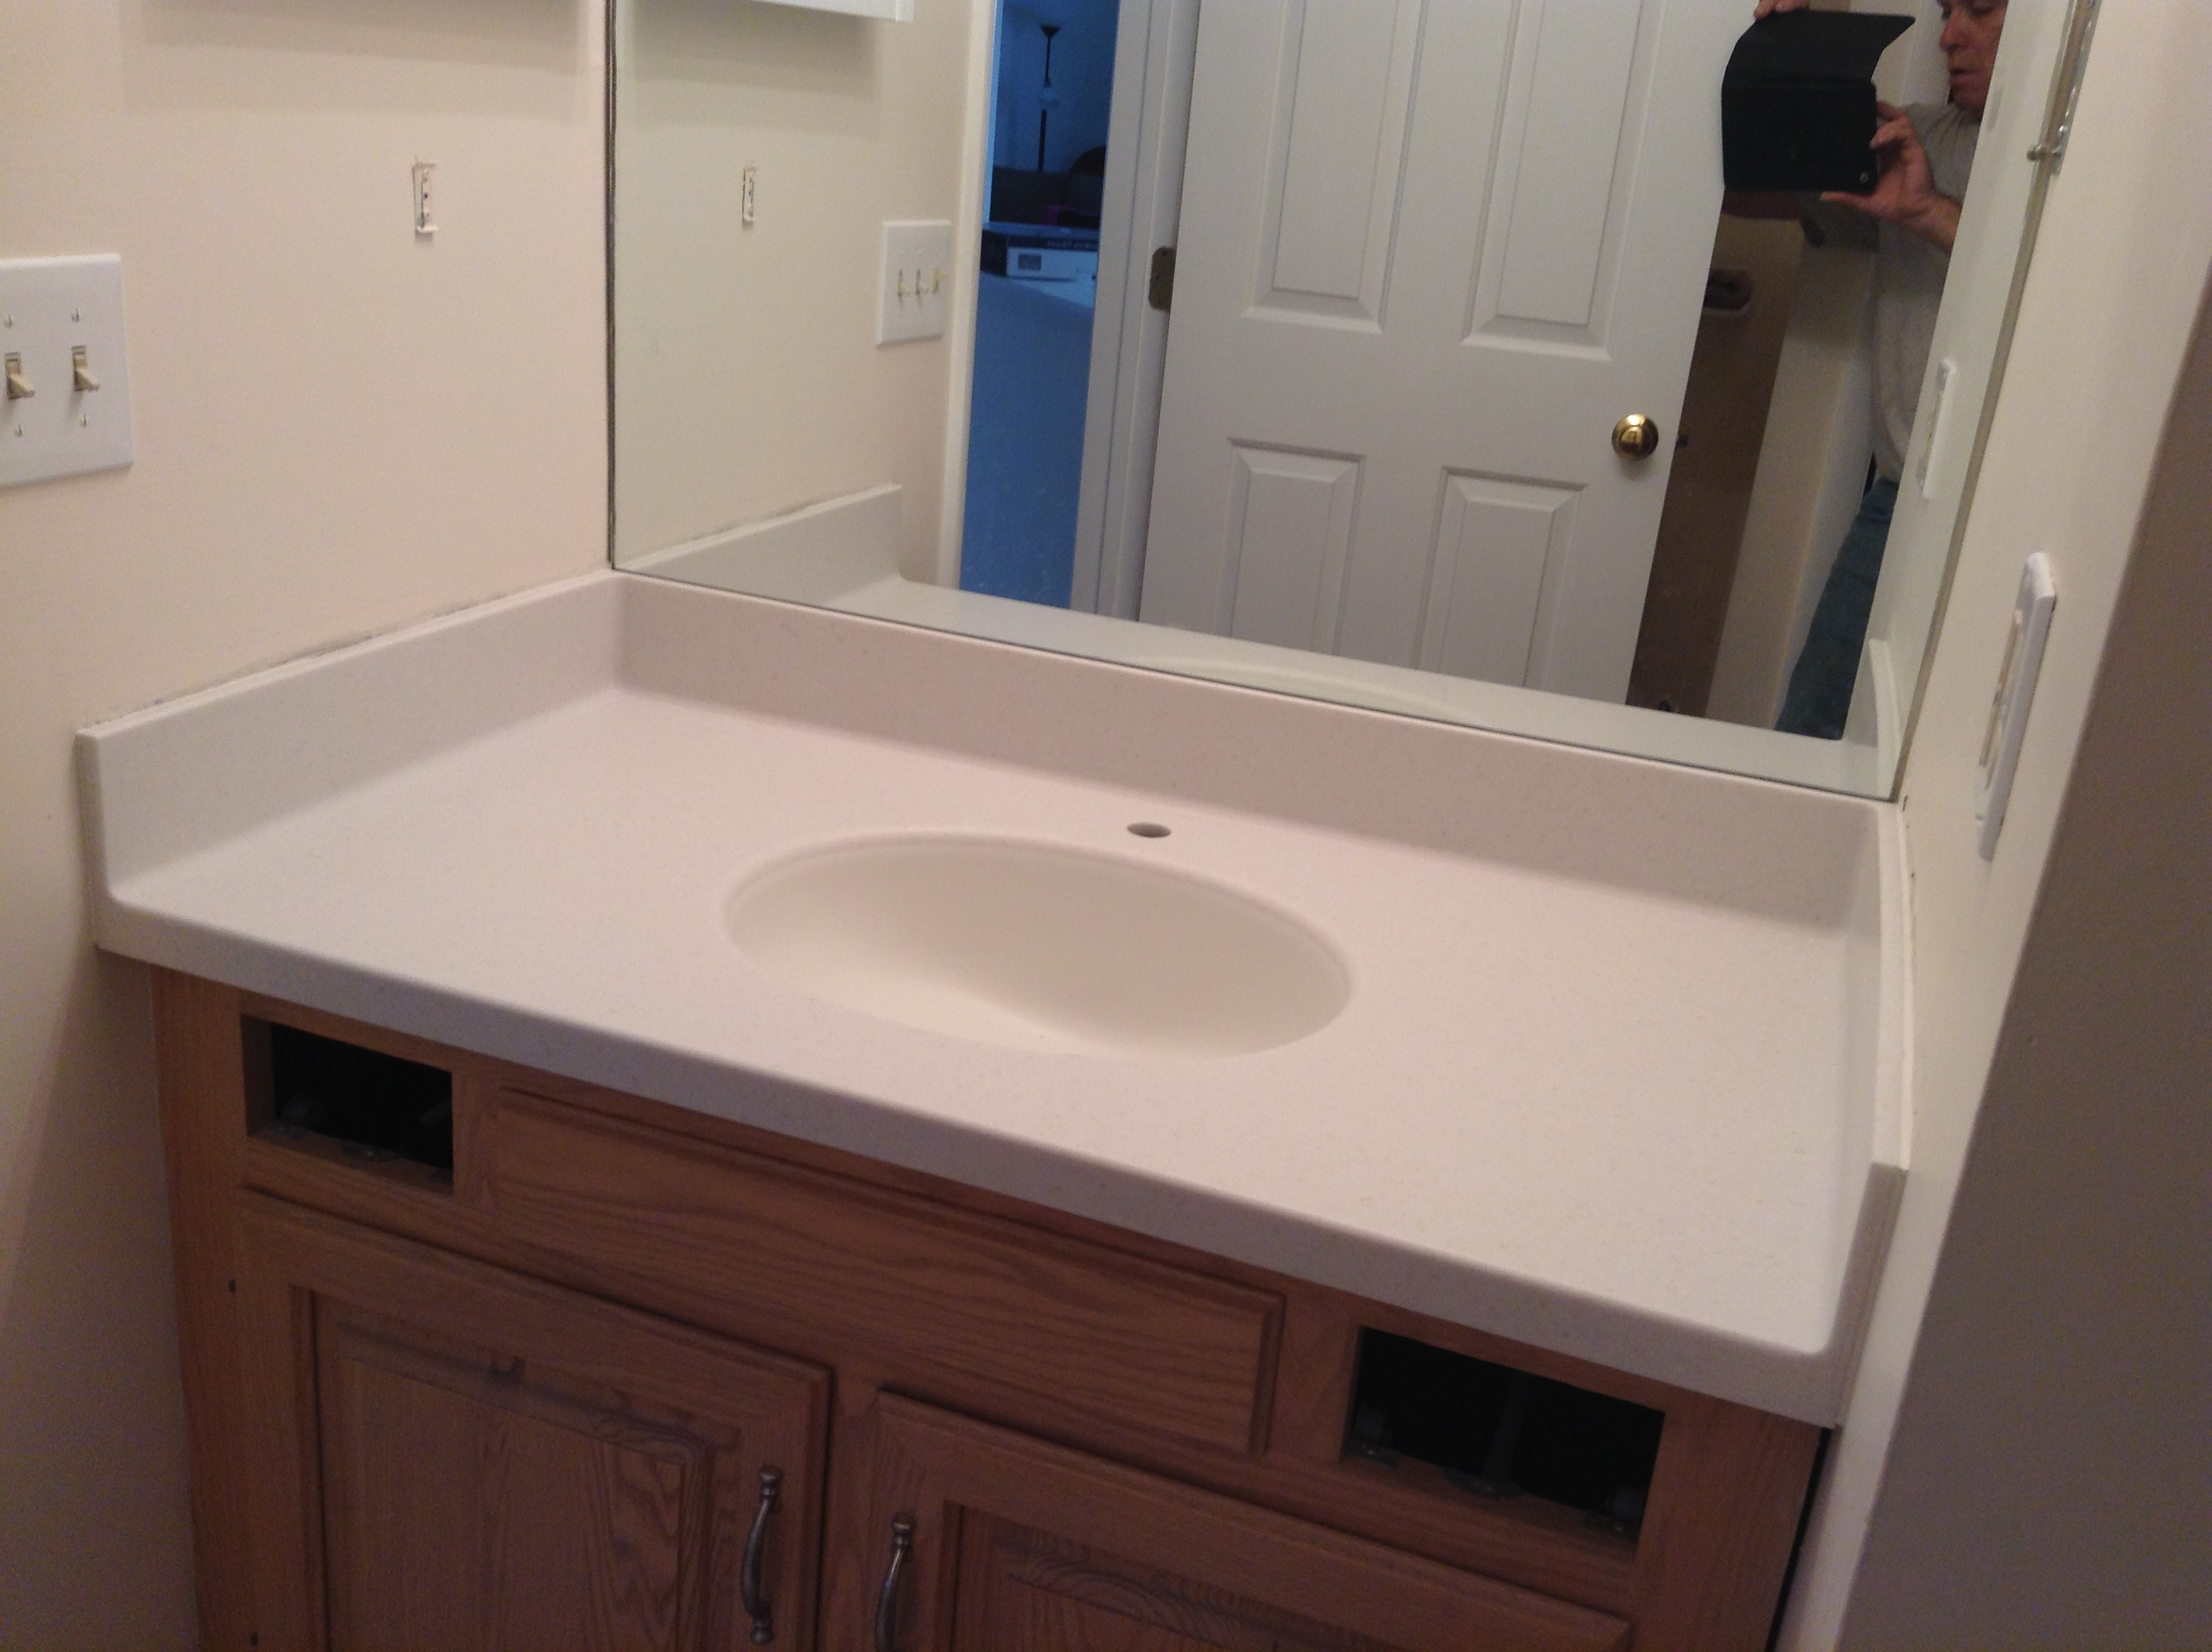 Colors Of Corian Countertops Before Corian And After Corian Countertops By Starian